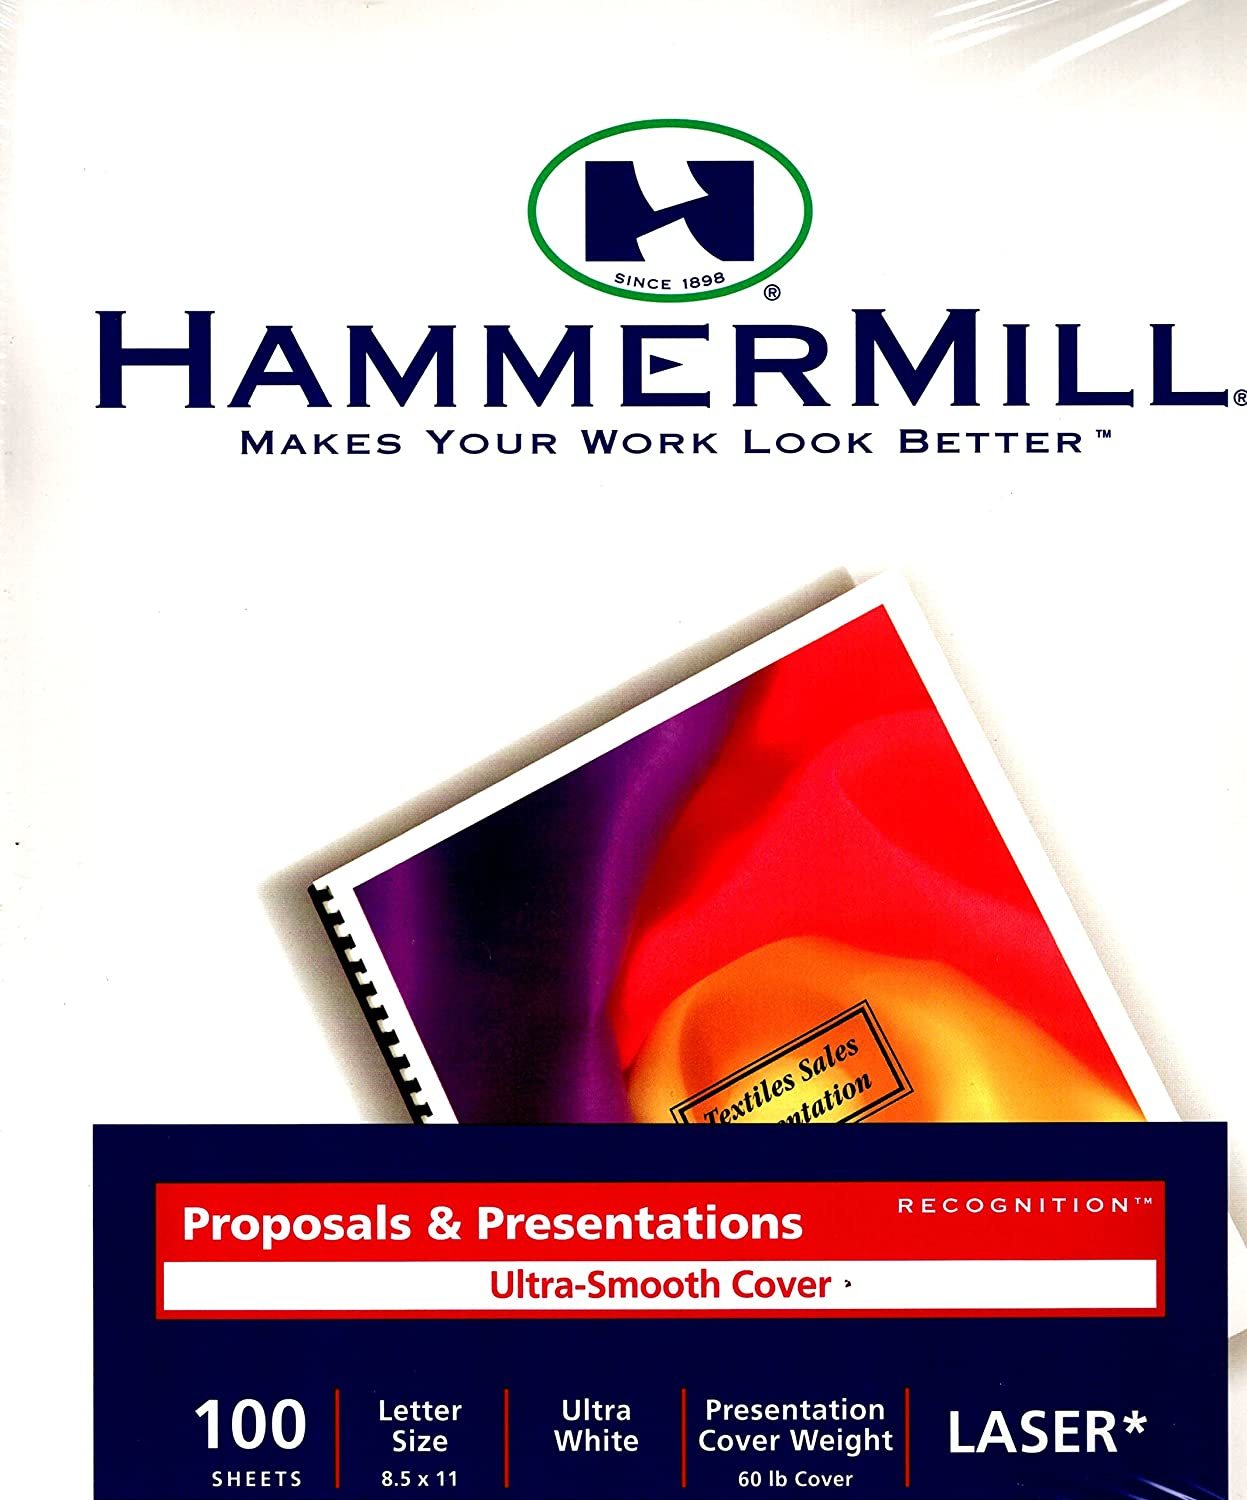 Letter Size 60 lb 100 Sheets Ultra White Cover Laser Hammermill Proposals /& Presentations Ultra Smooth Cover